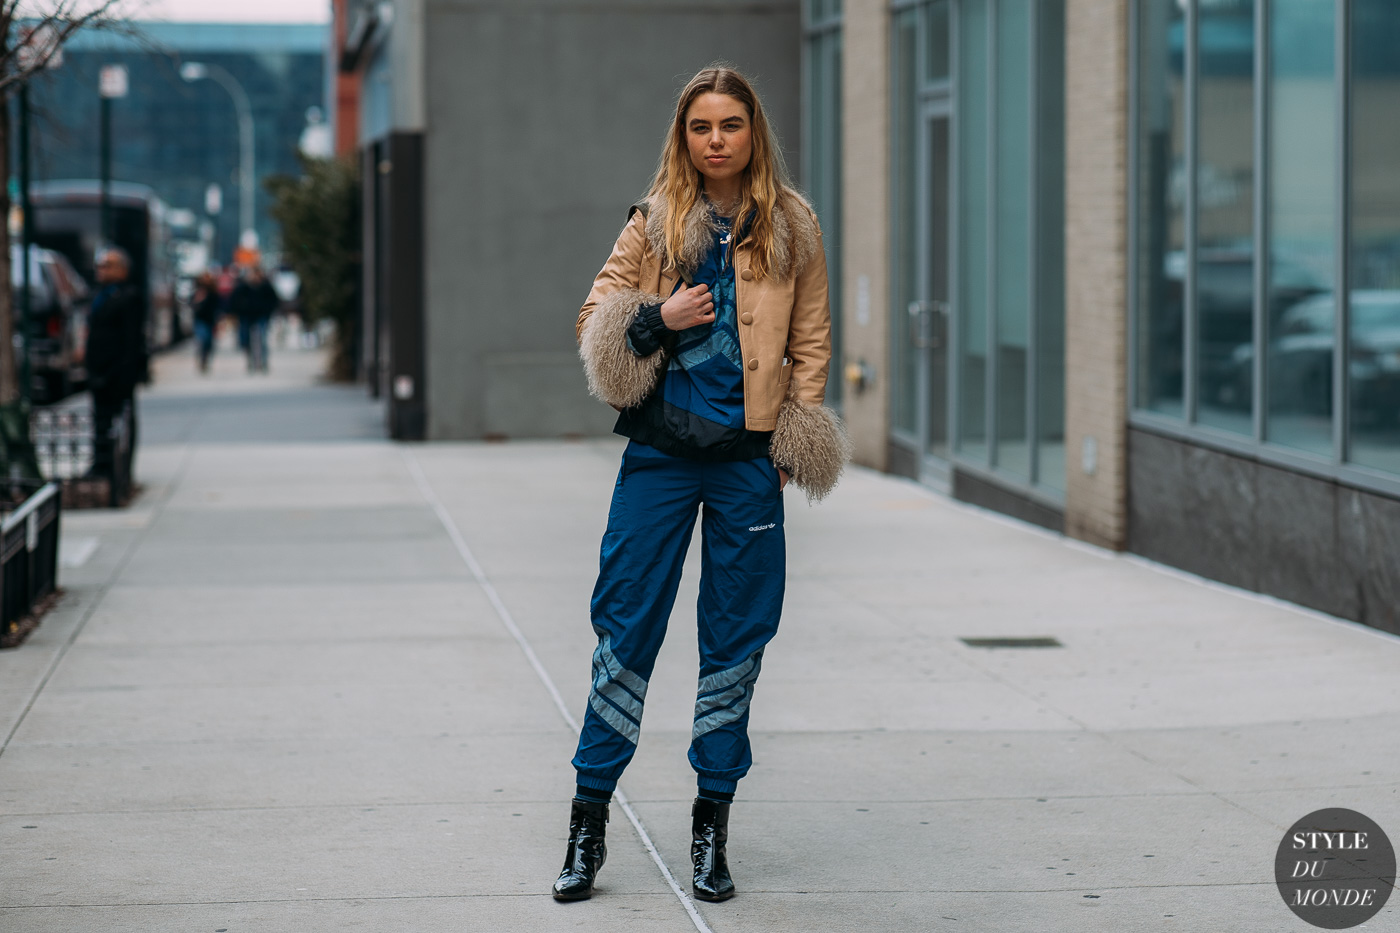 Laura-Maria Wulff by STYLEDUMONDE Street Style Fashion Photography NY FW18 20180210_48A4507